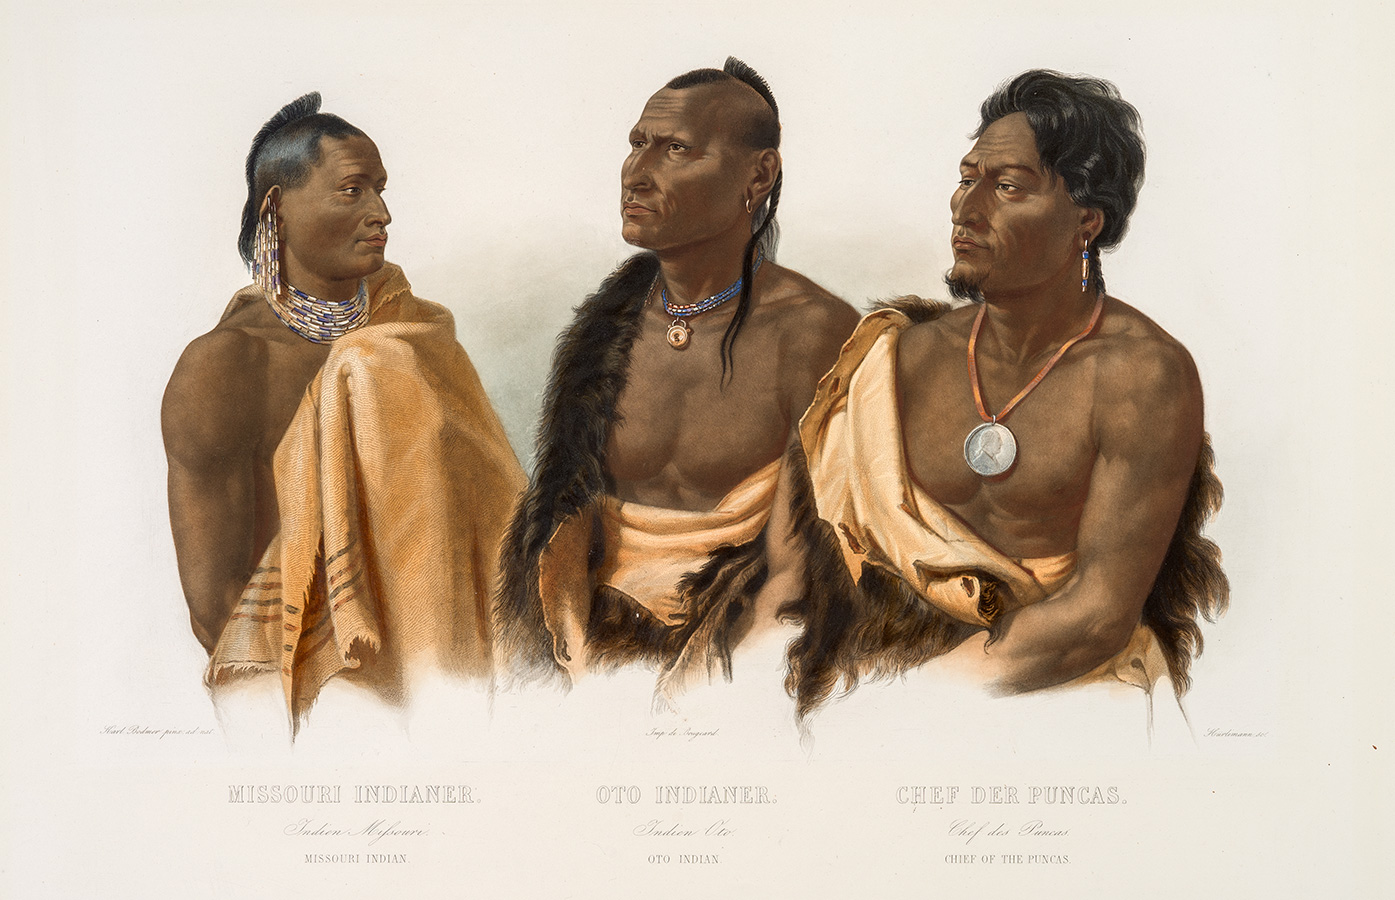 Missouri-Indian,-Oto-Indian,-Chief-ot-the-Puncus_sized